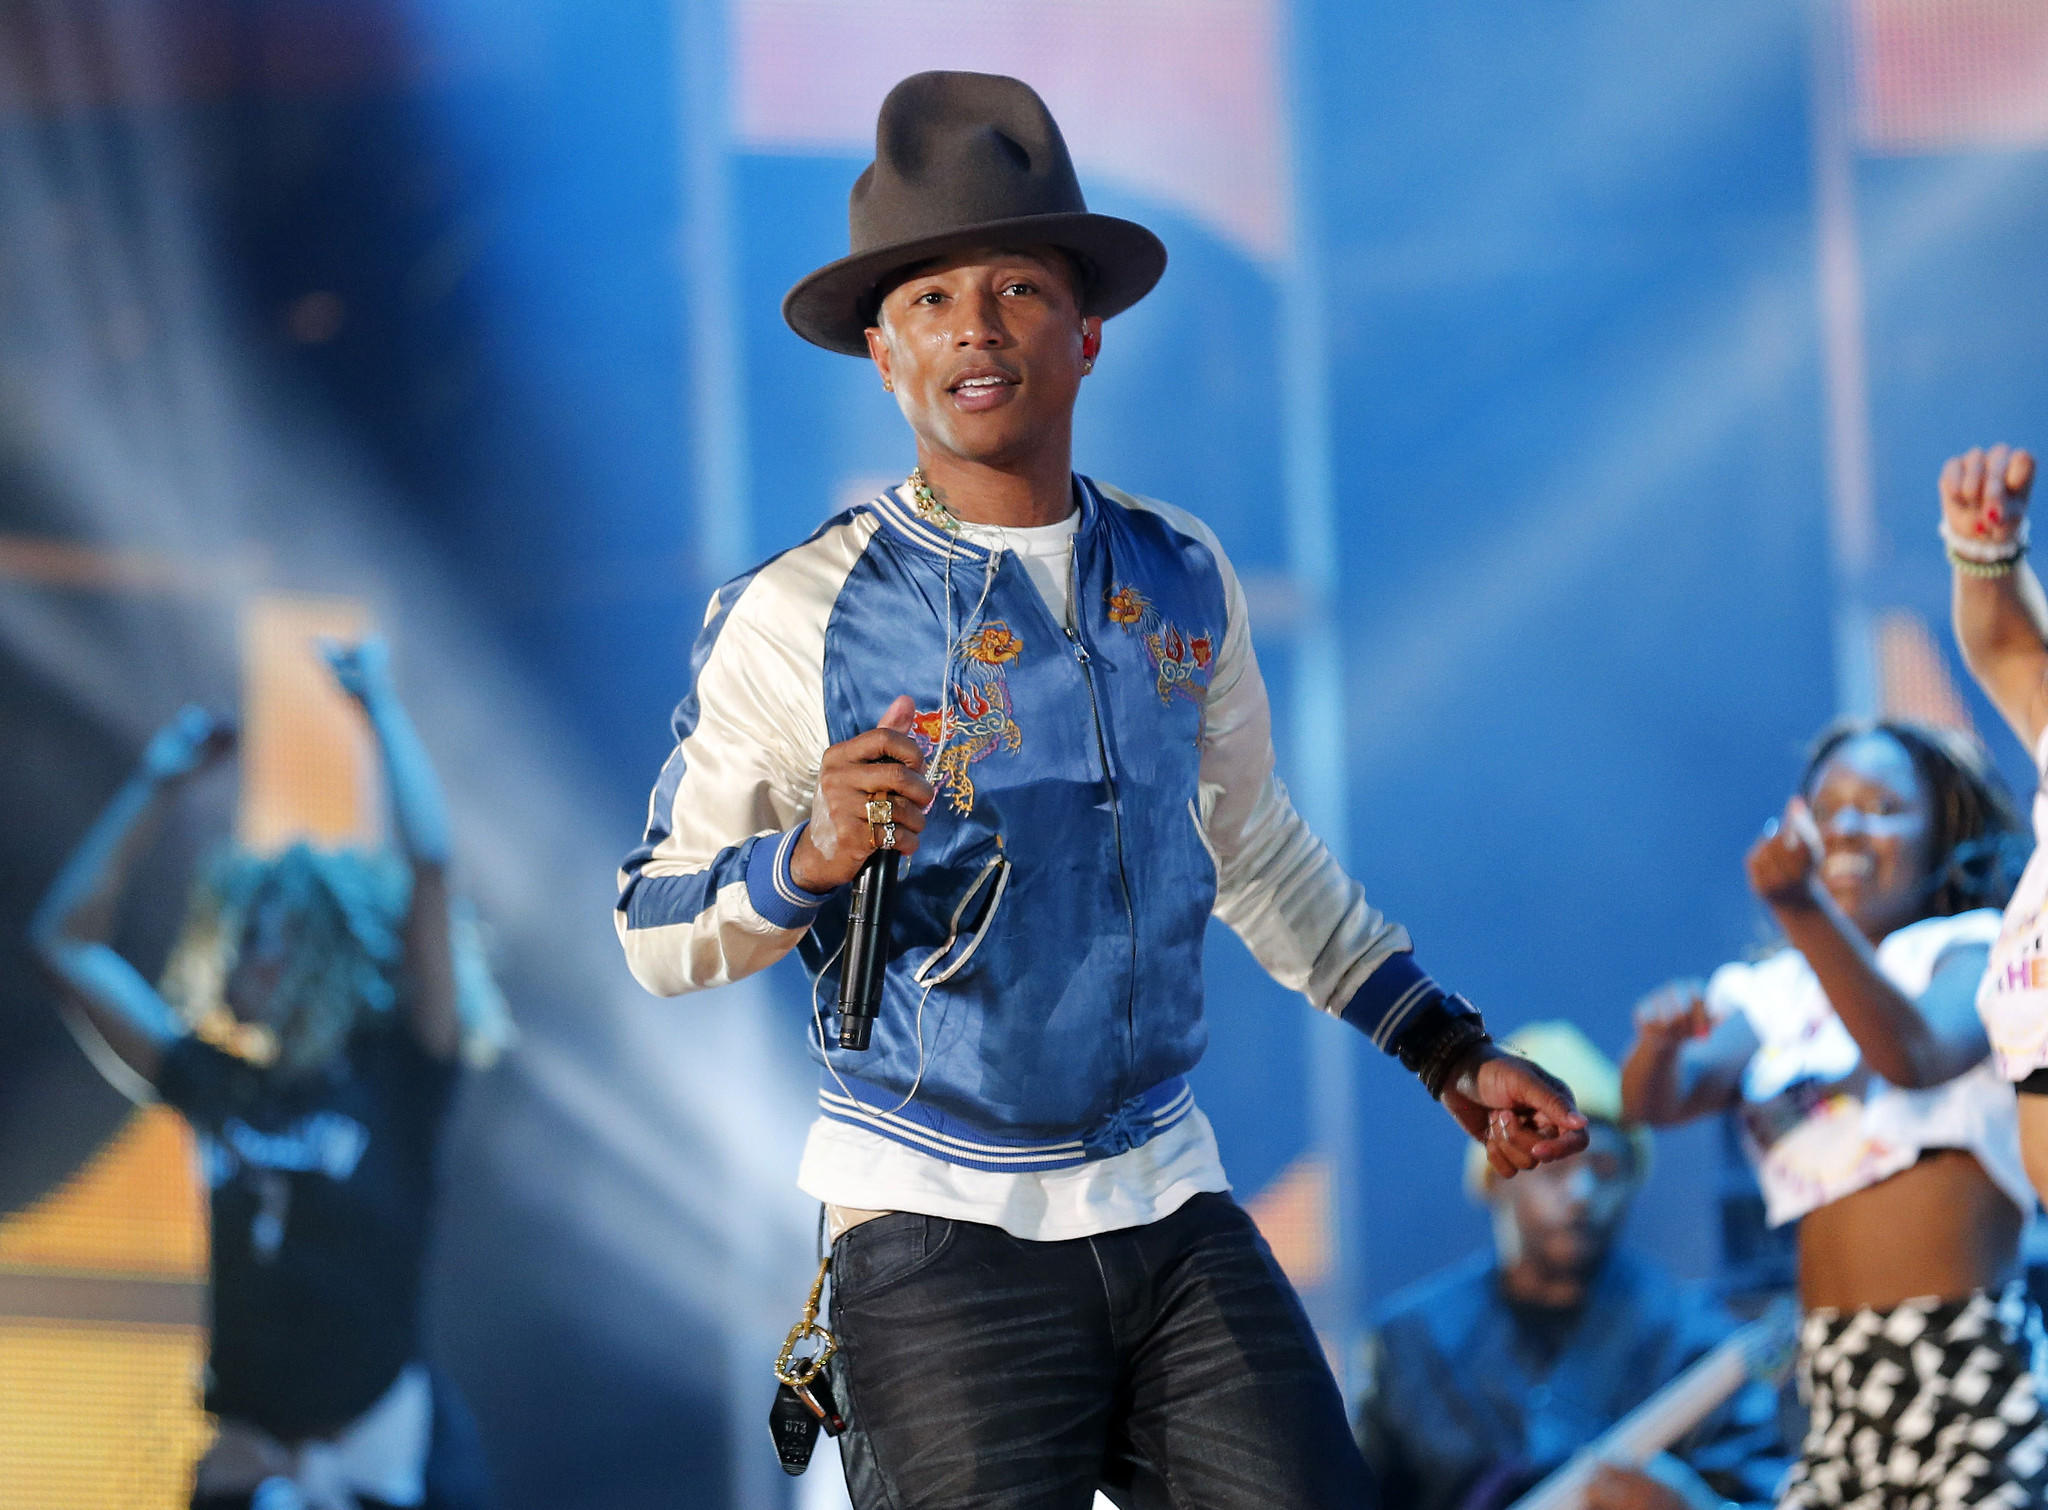 Pharrell Williams in rehearsal during NBA All-Star weekend last month in New Orleans.